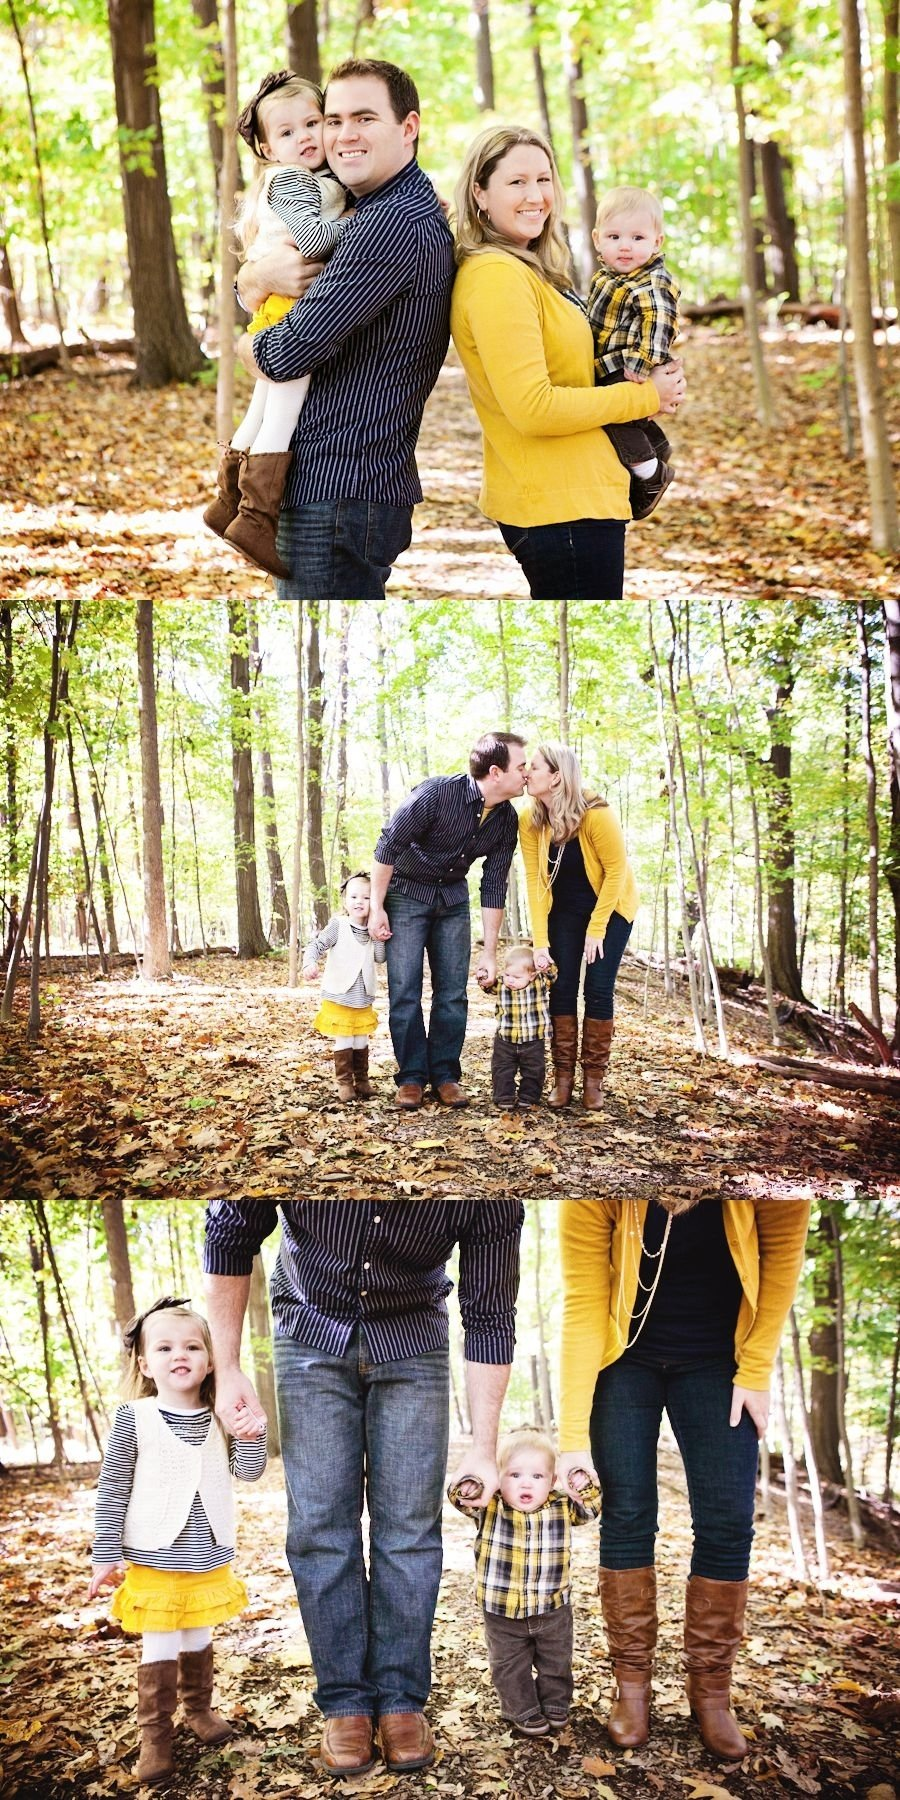 10 Most Recommended Fall Photo Shoot Outfit Ideas awesome example of great outfit coordination not matching for 1 2020